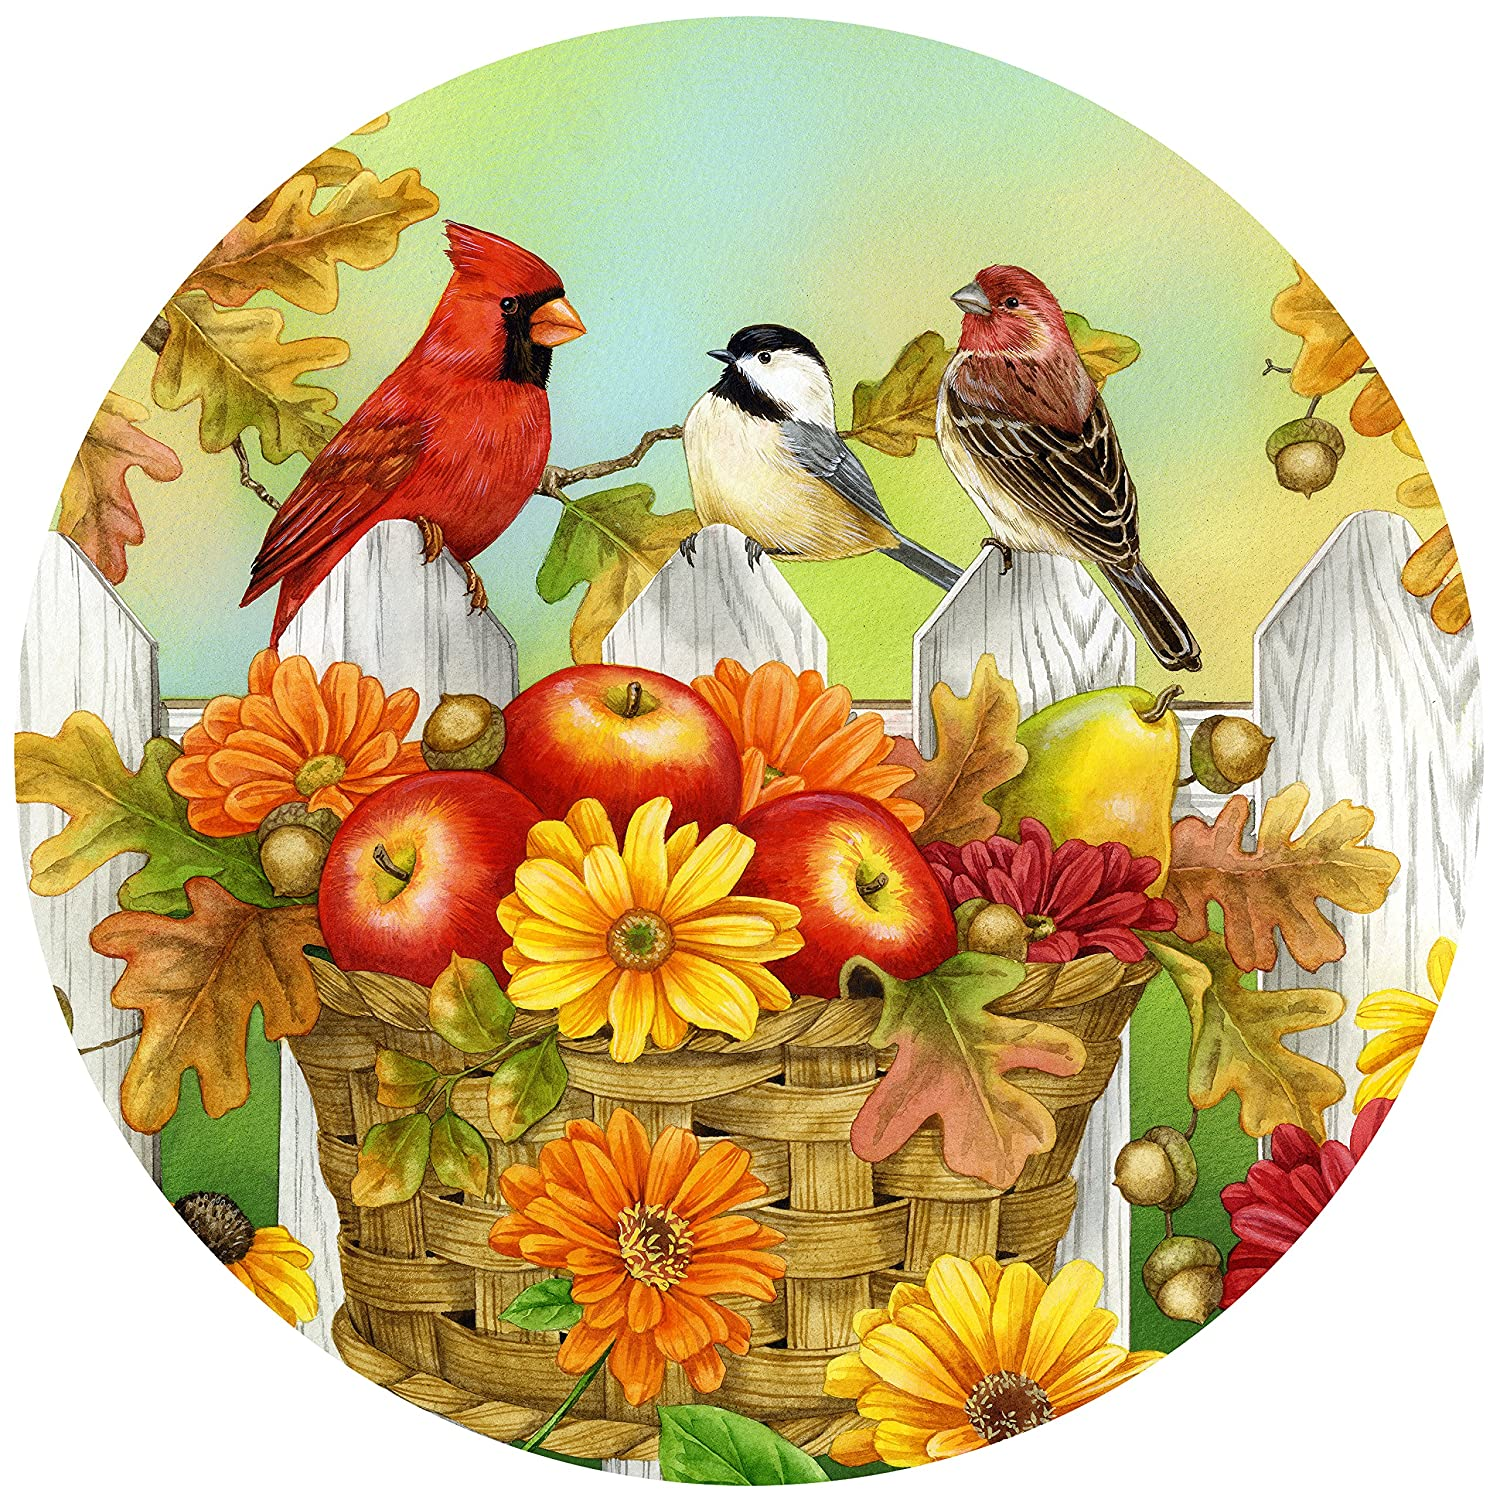 Painted Ladies Planet Zoo SP13 Pieces of Nature 500 Piece Jigsaw Puzzle